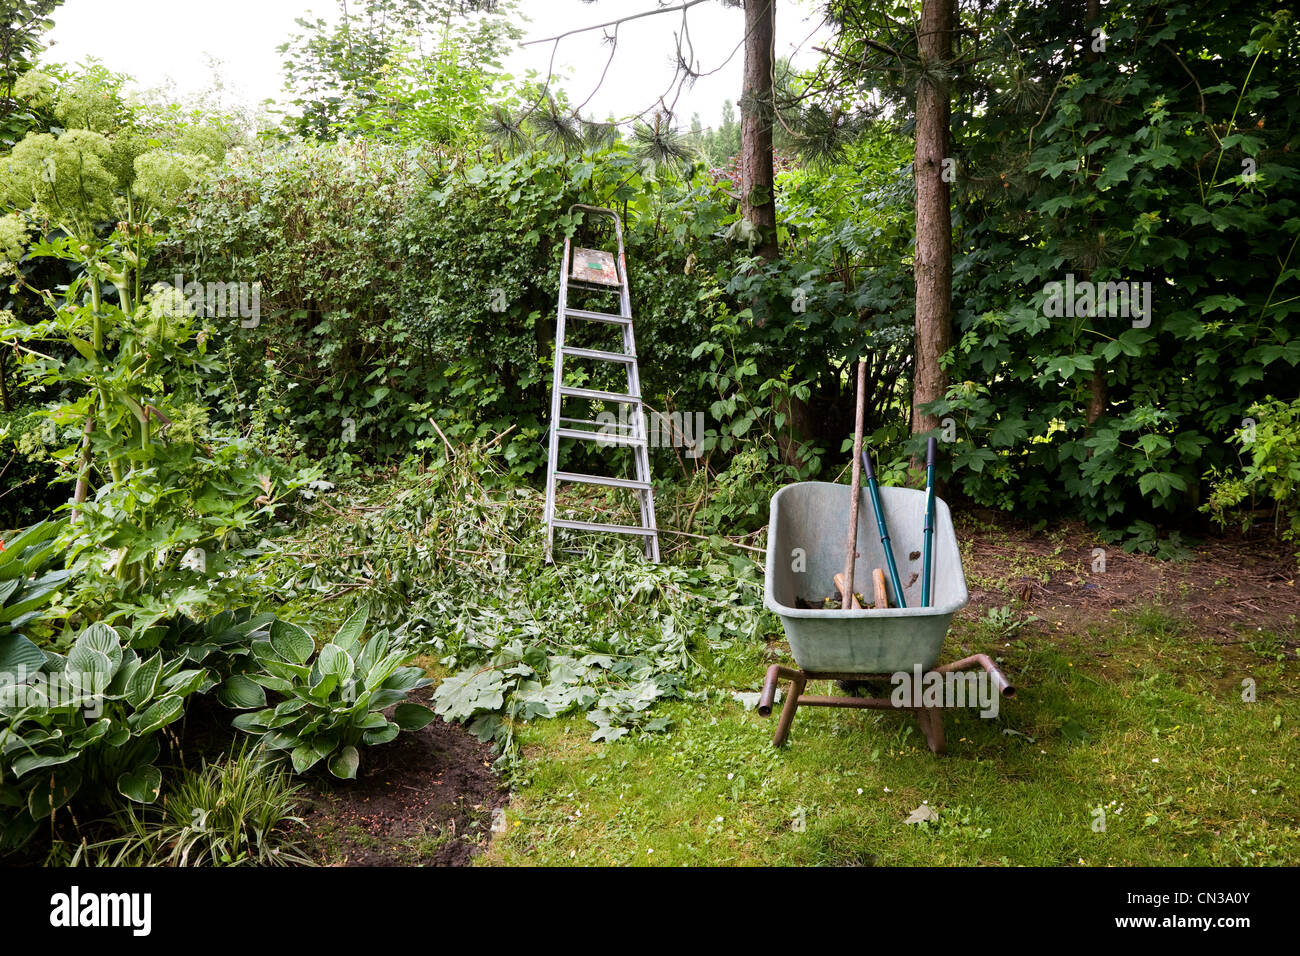 Working in the garden - Stock Image